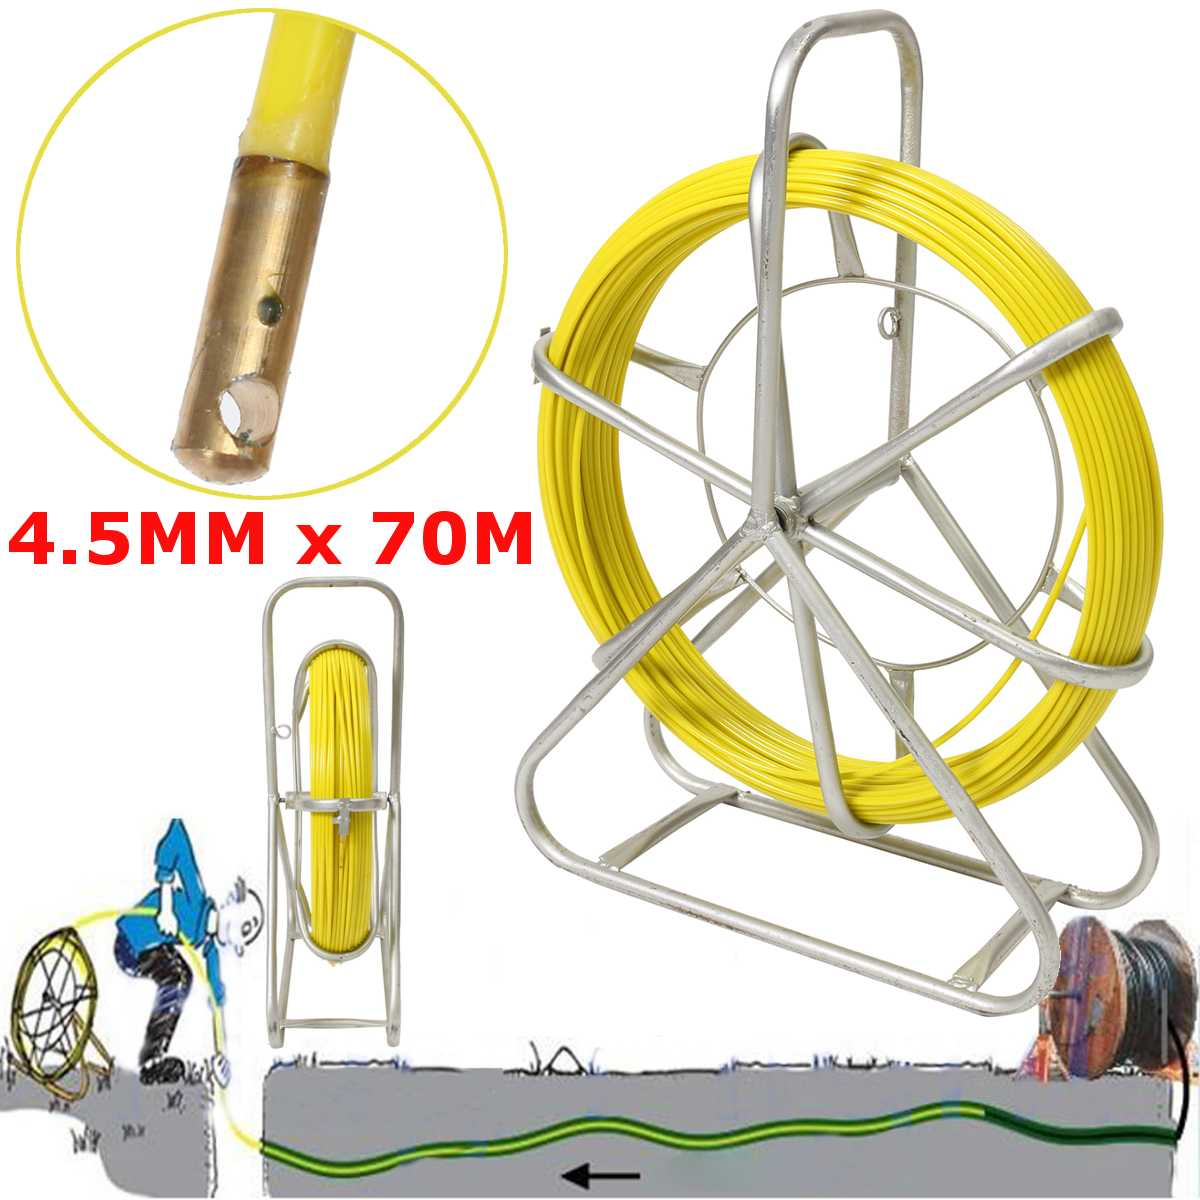 Electric Reel Wire Cable Running Rod Duct Rodder Fish Tape Puller used for Telecom, Wall and Floor Conduit 4.5mm 70MElectric Reel Wire Cable Running Rod Duct Rodder Fish Tape Puller used for Telecom, Wall and Floor Conduit 4.5mm 70M